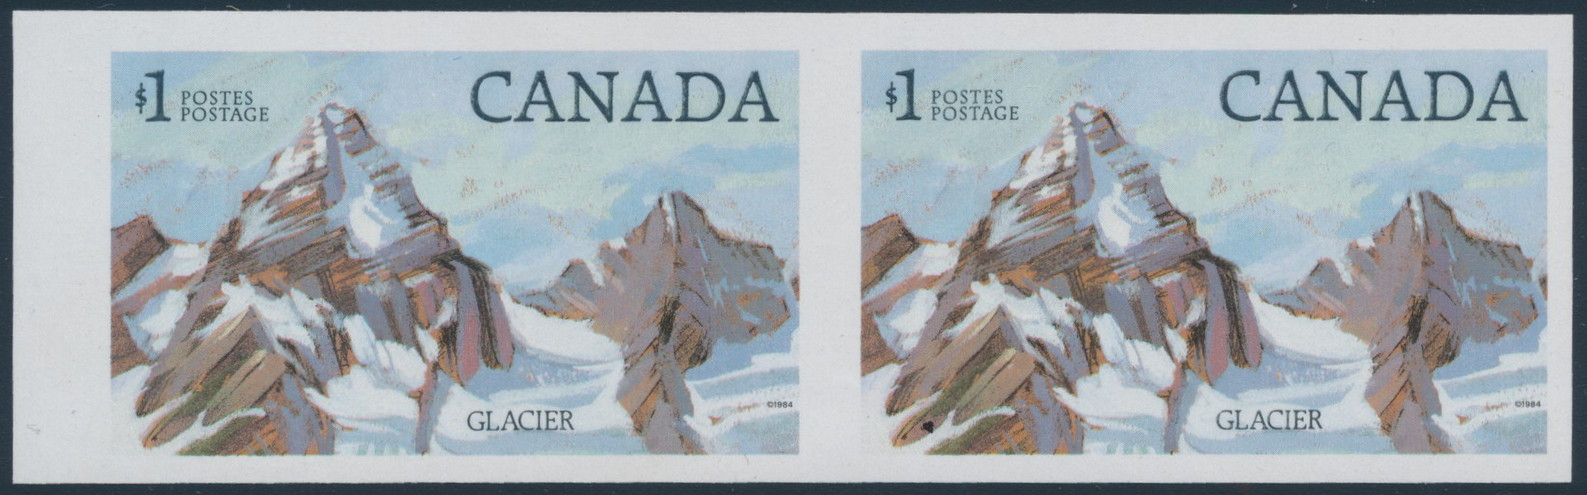 Lot 375, Canada 1984 $1 Glacier National Park imperf horizontal pair, XF NH, sold for C$3,680